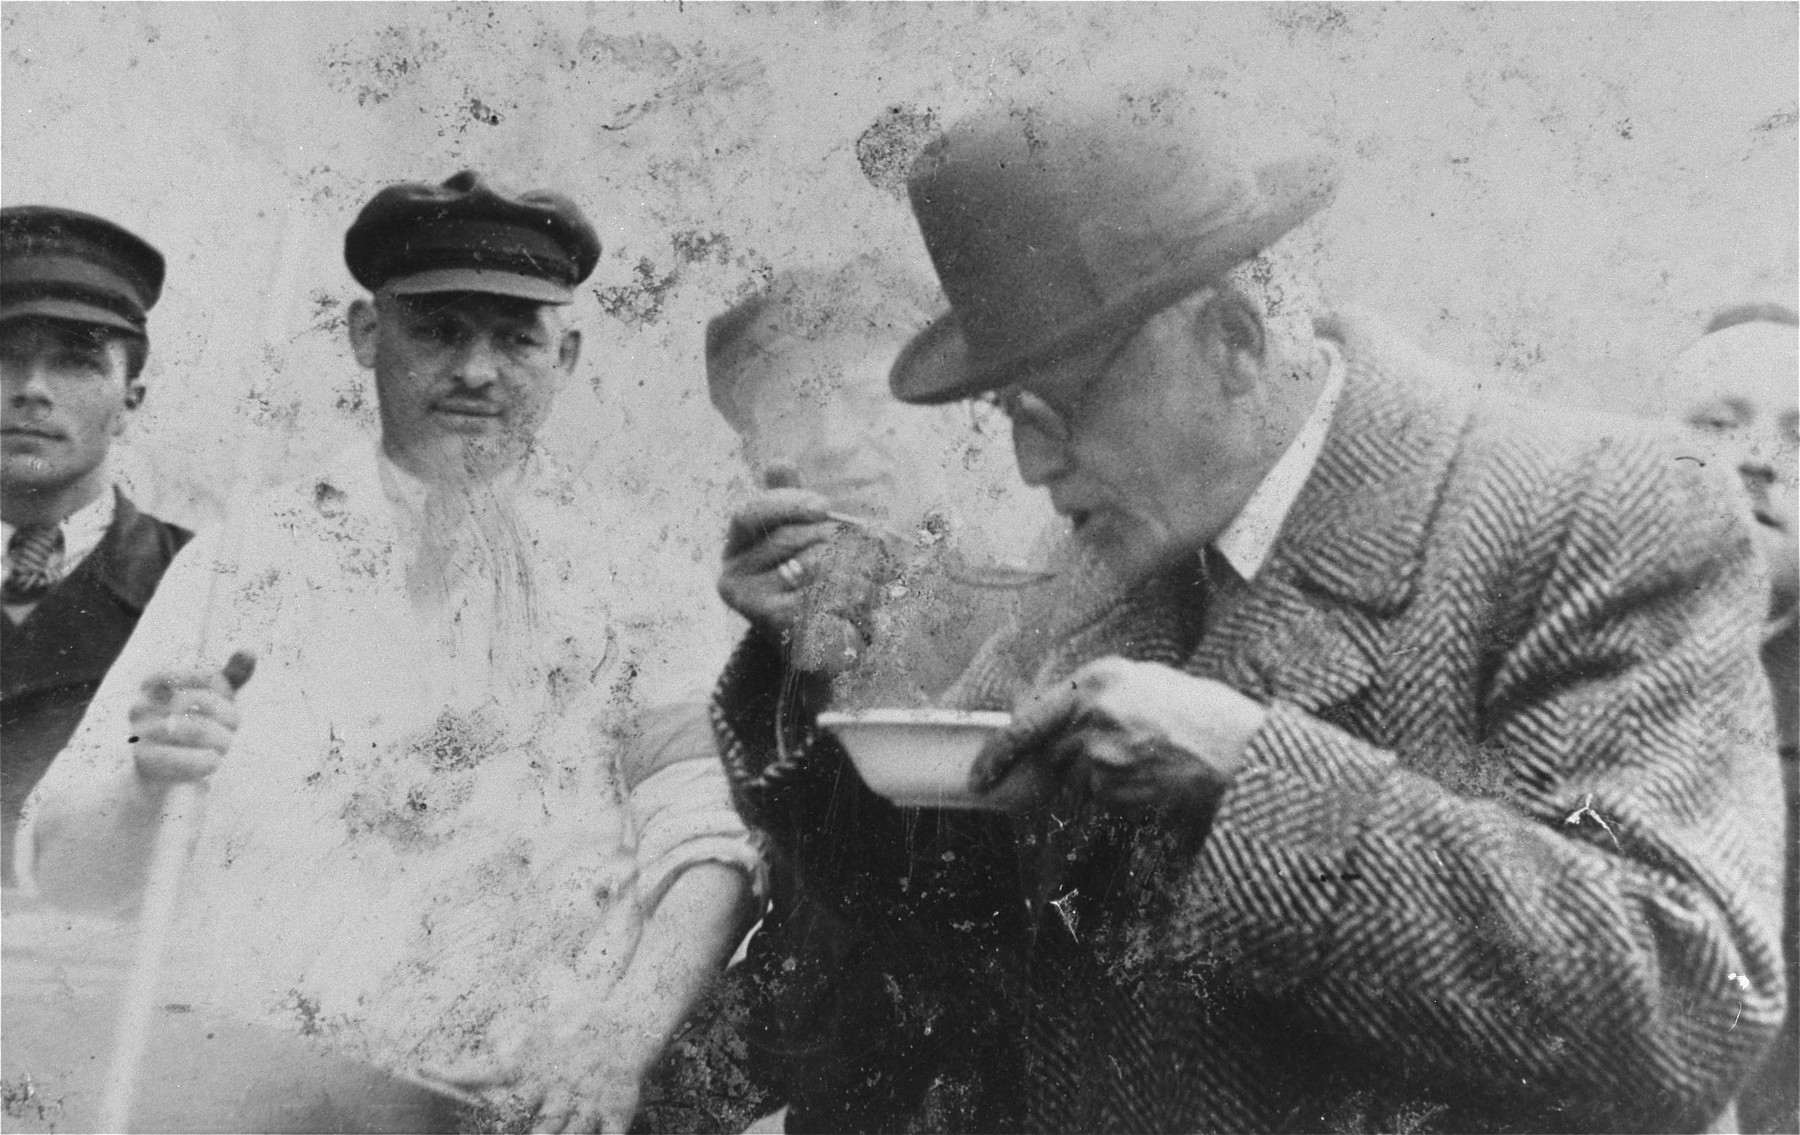 Jewish council chairman Mordechai Chaim Rumkowski, eats a bowl of soup [probably at a newly opened soup kitchen] in the Lodz ghetto.